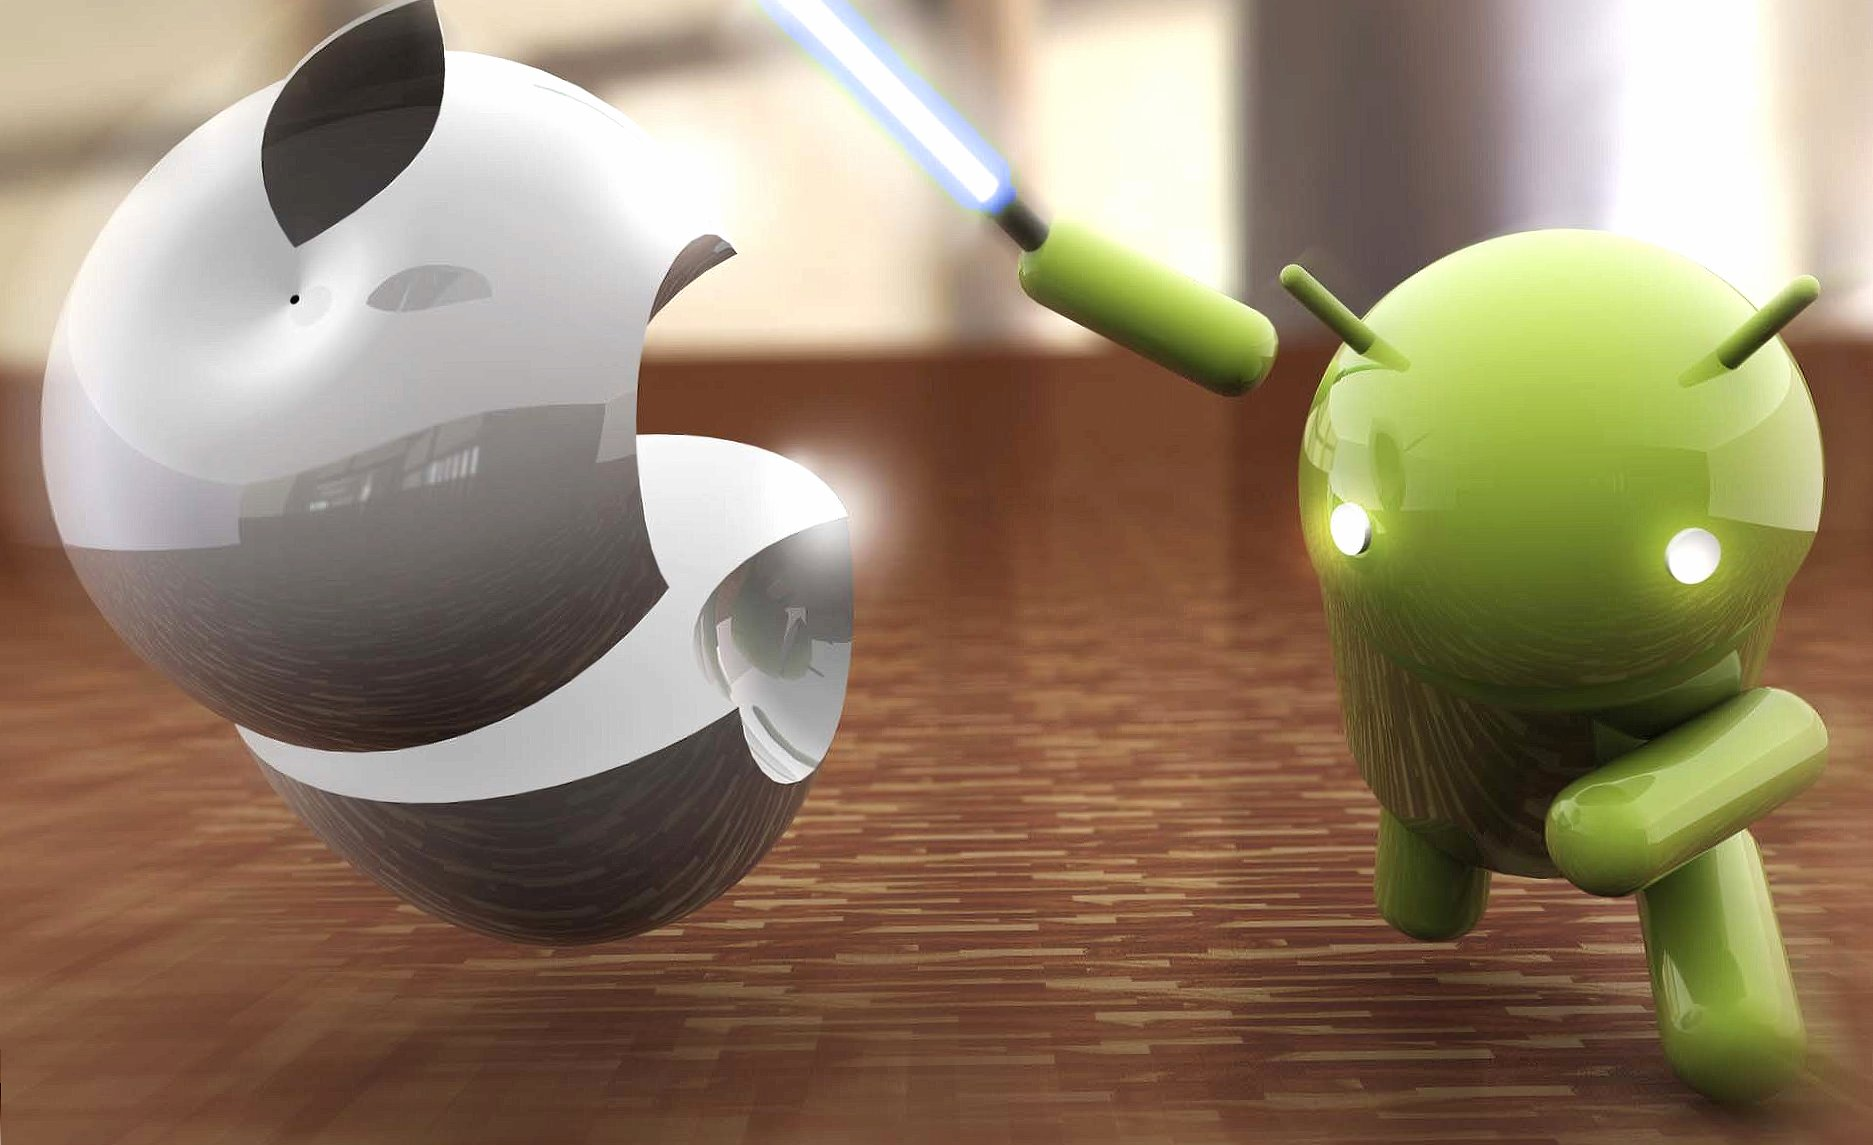 Sword apple android wallpapers HD quality